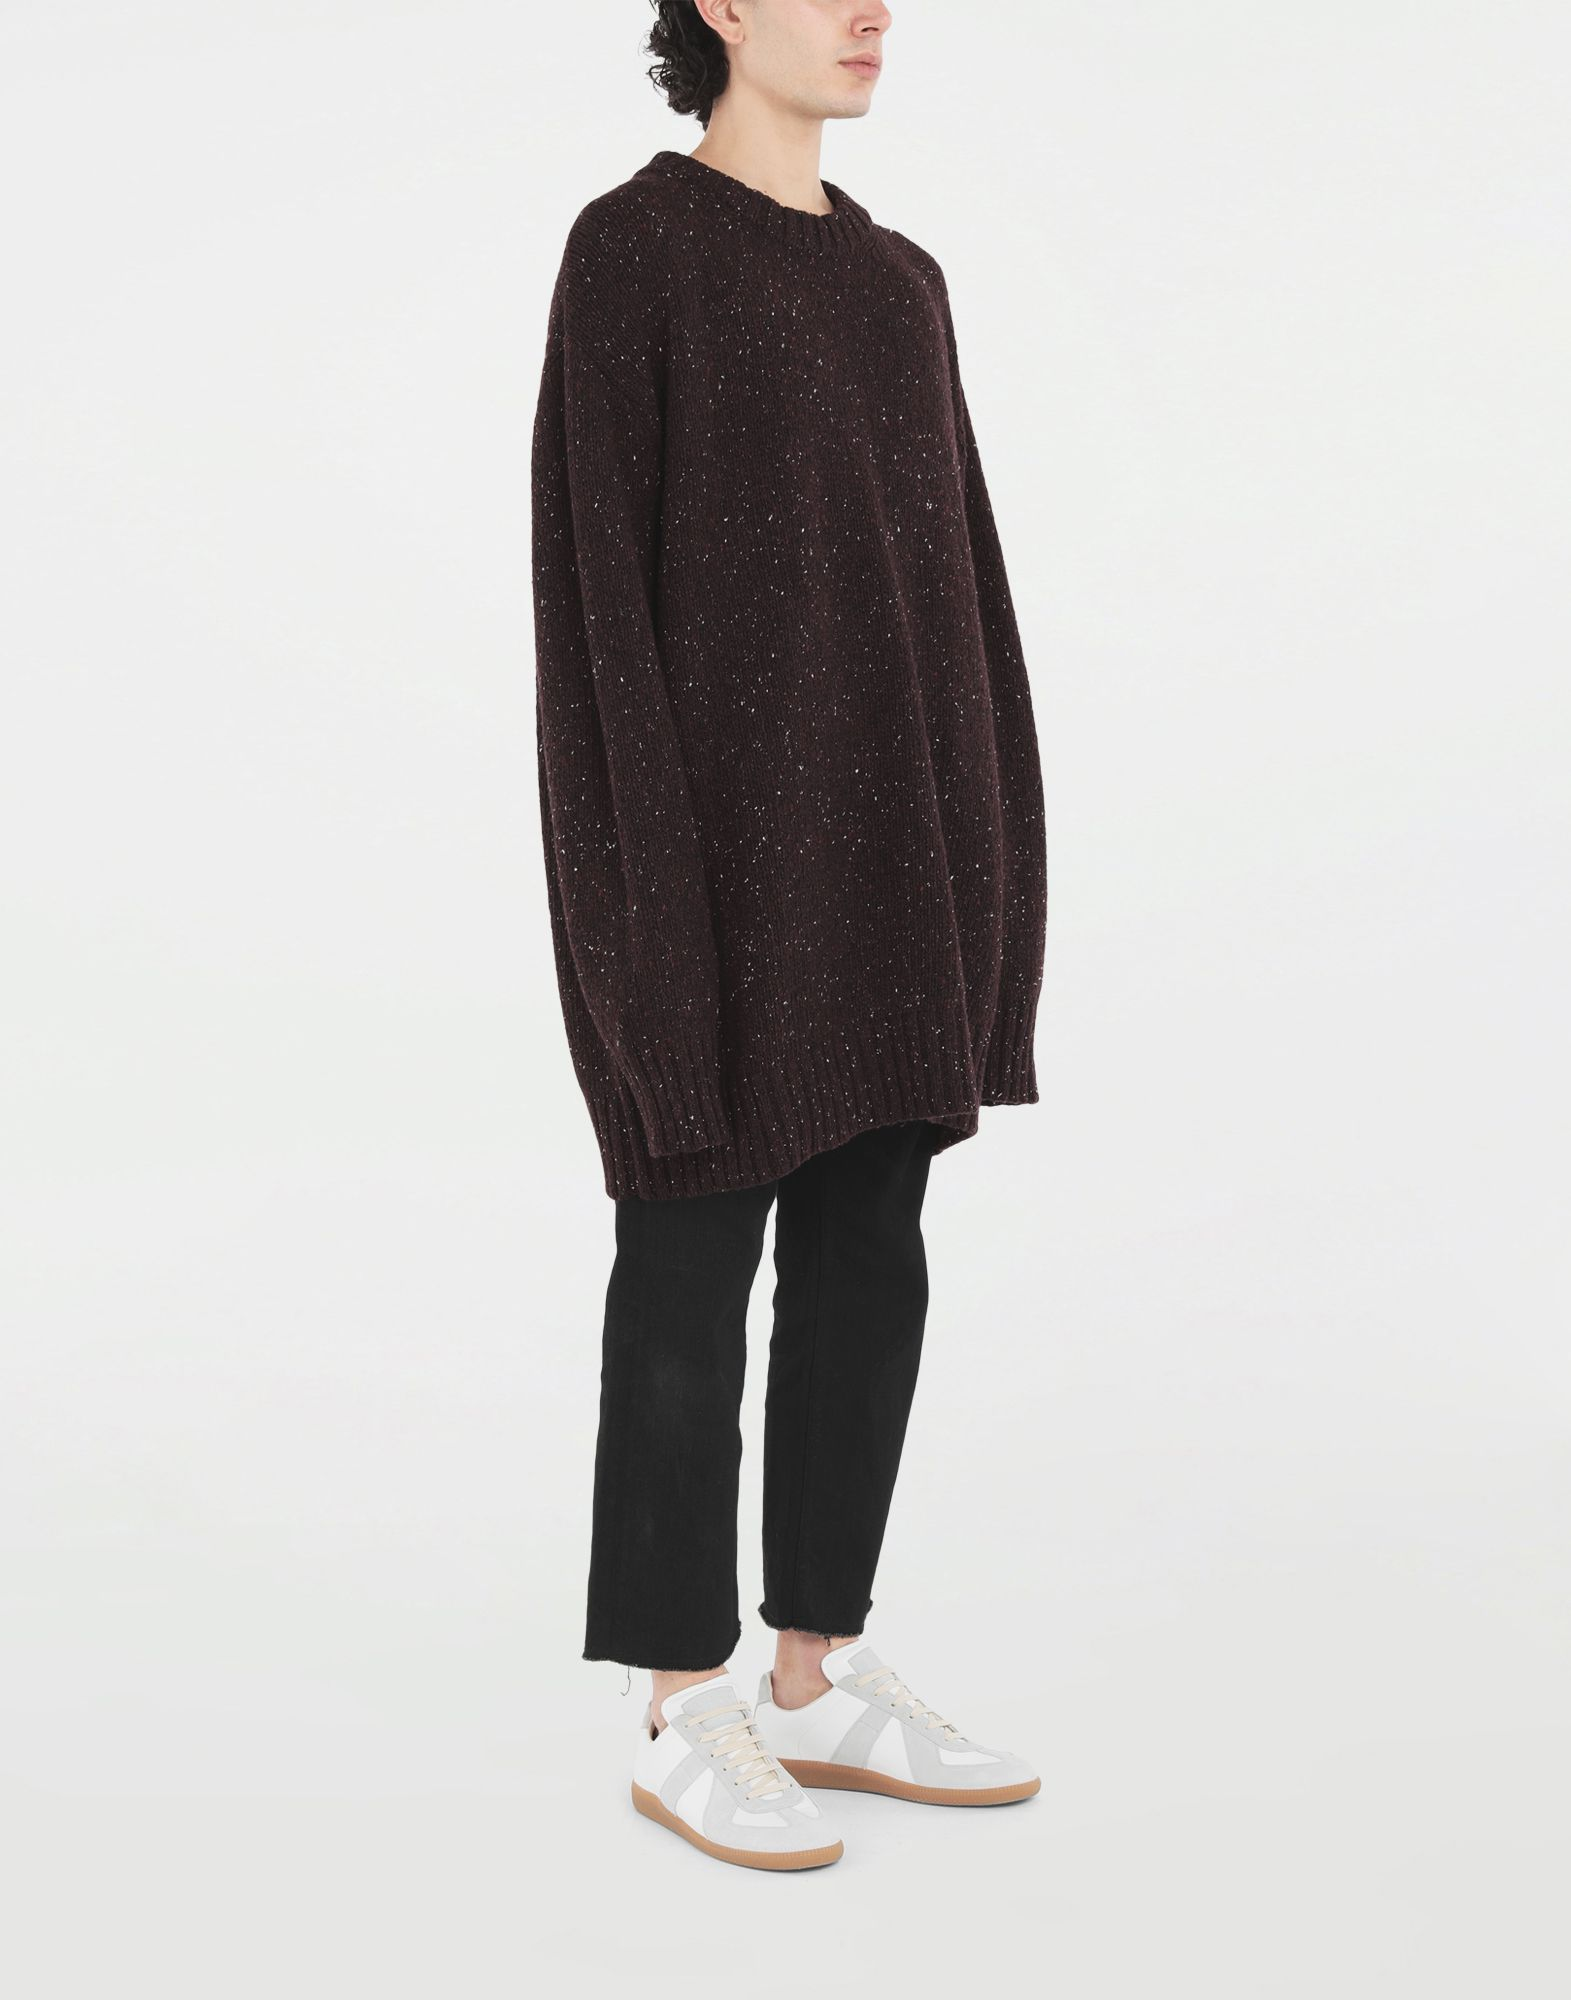 MAISON MARGIELA Oversized sweater Crewneck sweater Man d